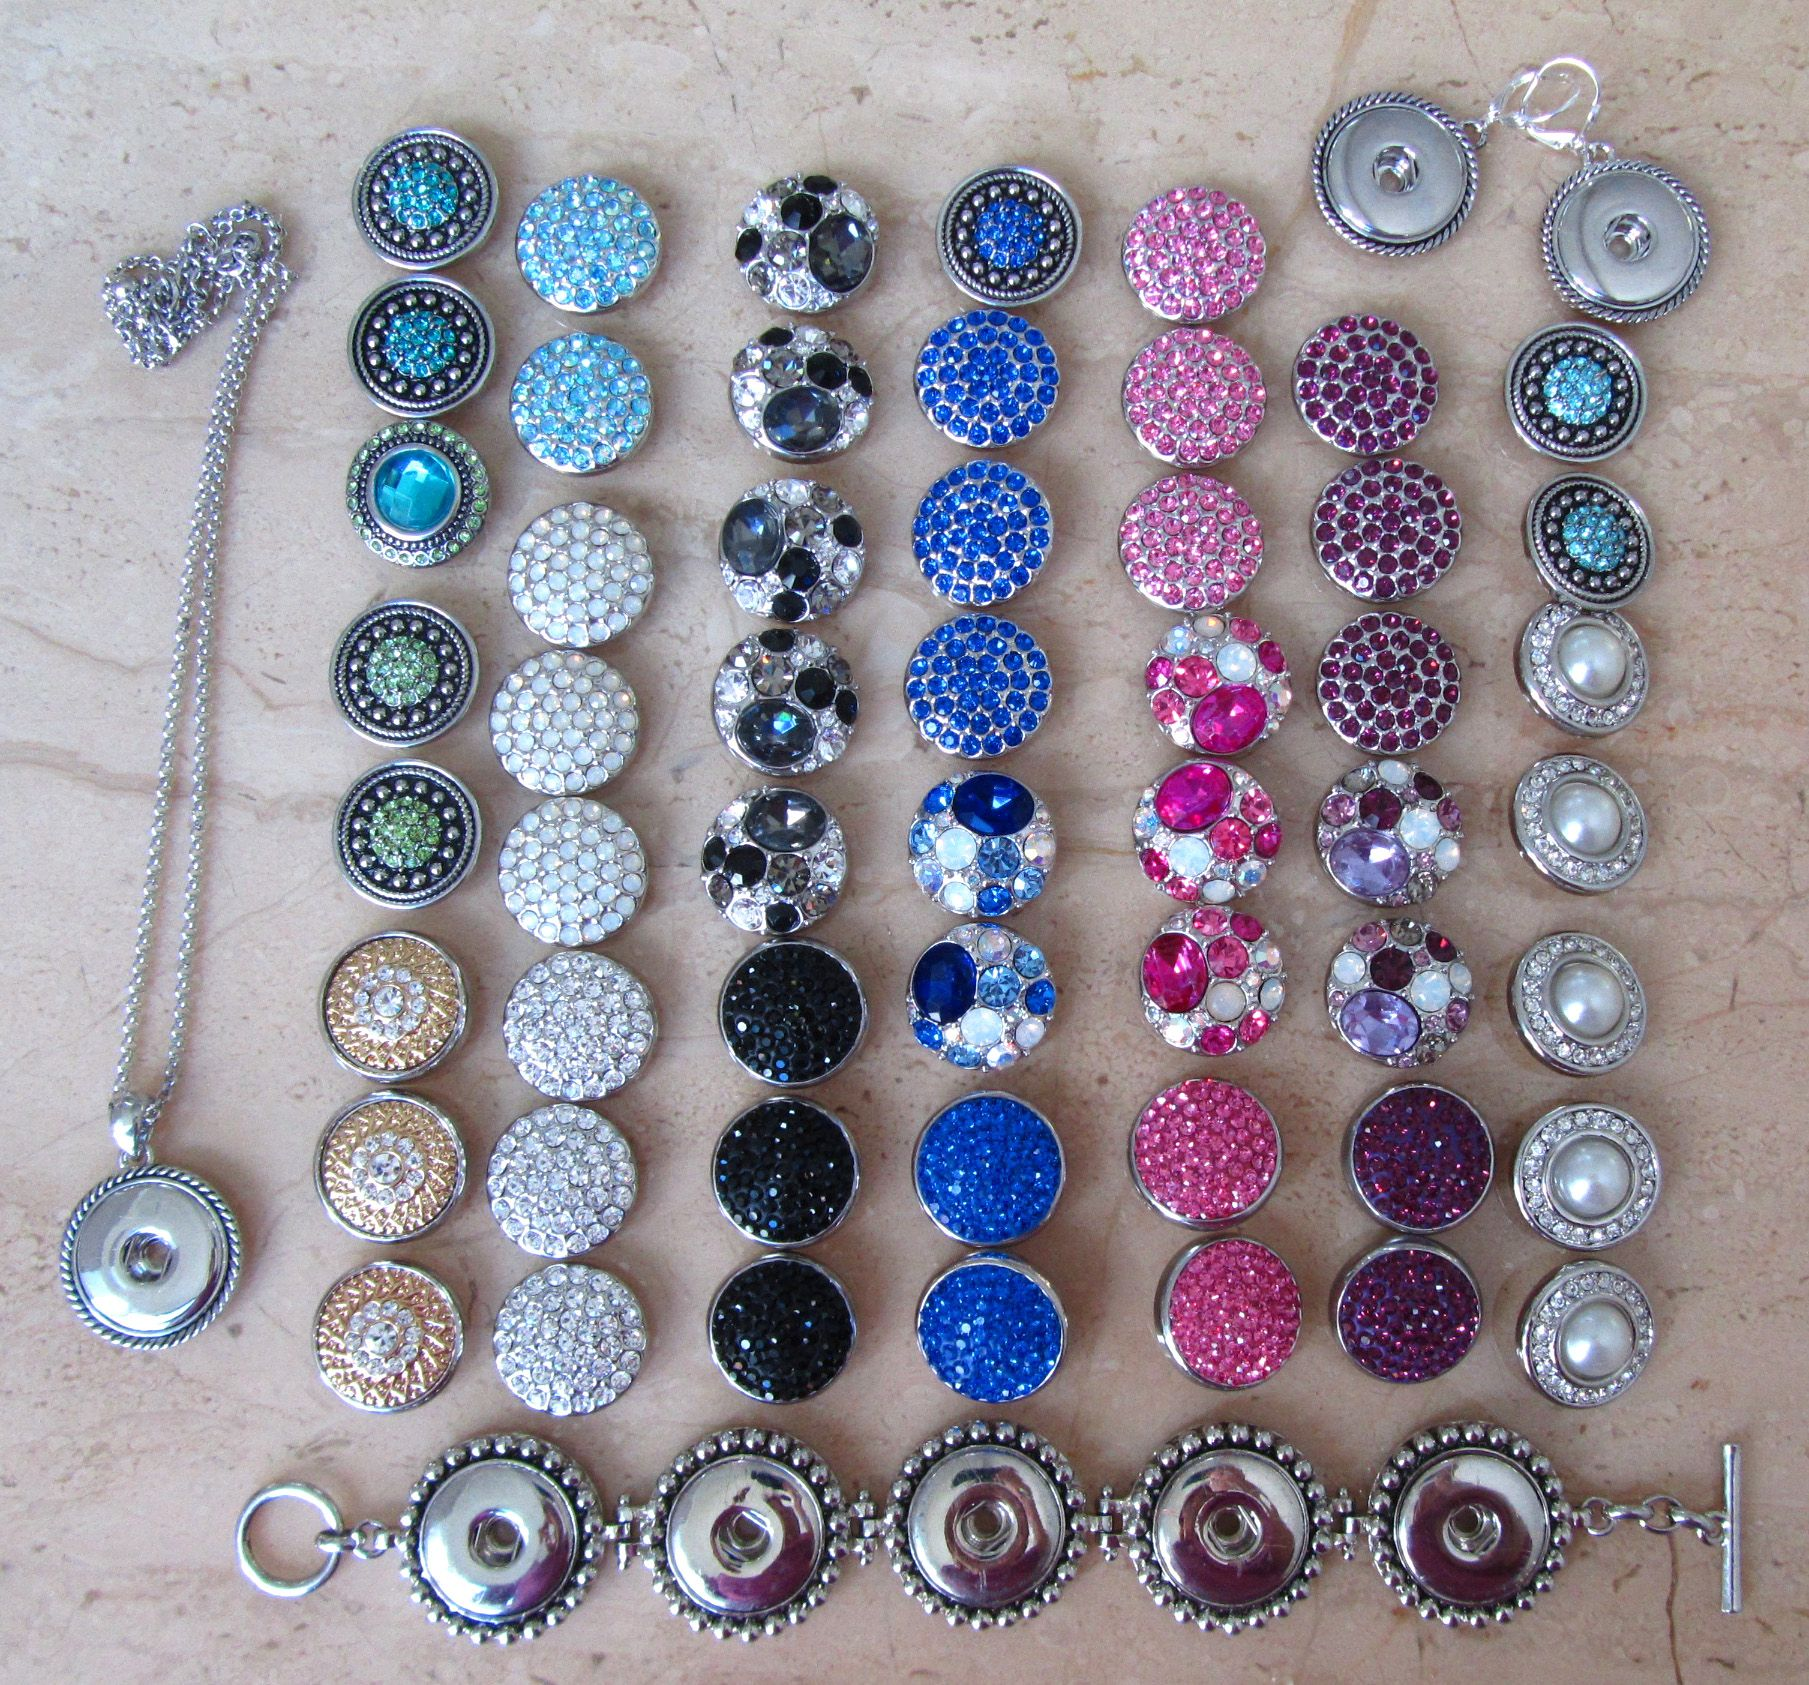 These are the beads I have so far and interchange to make the bracelets, necklaces and earrings shown on this board.